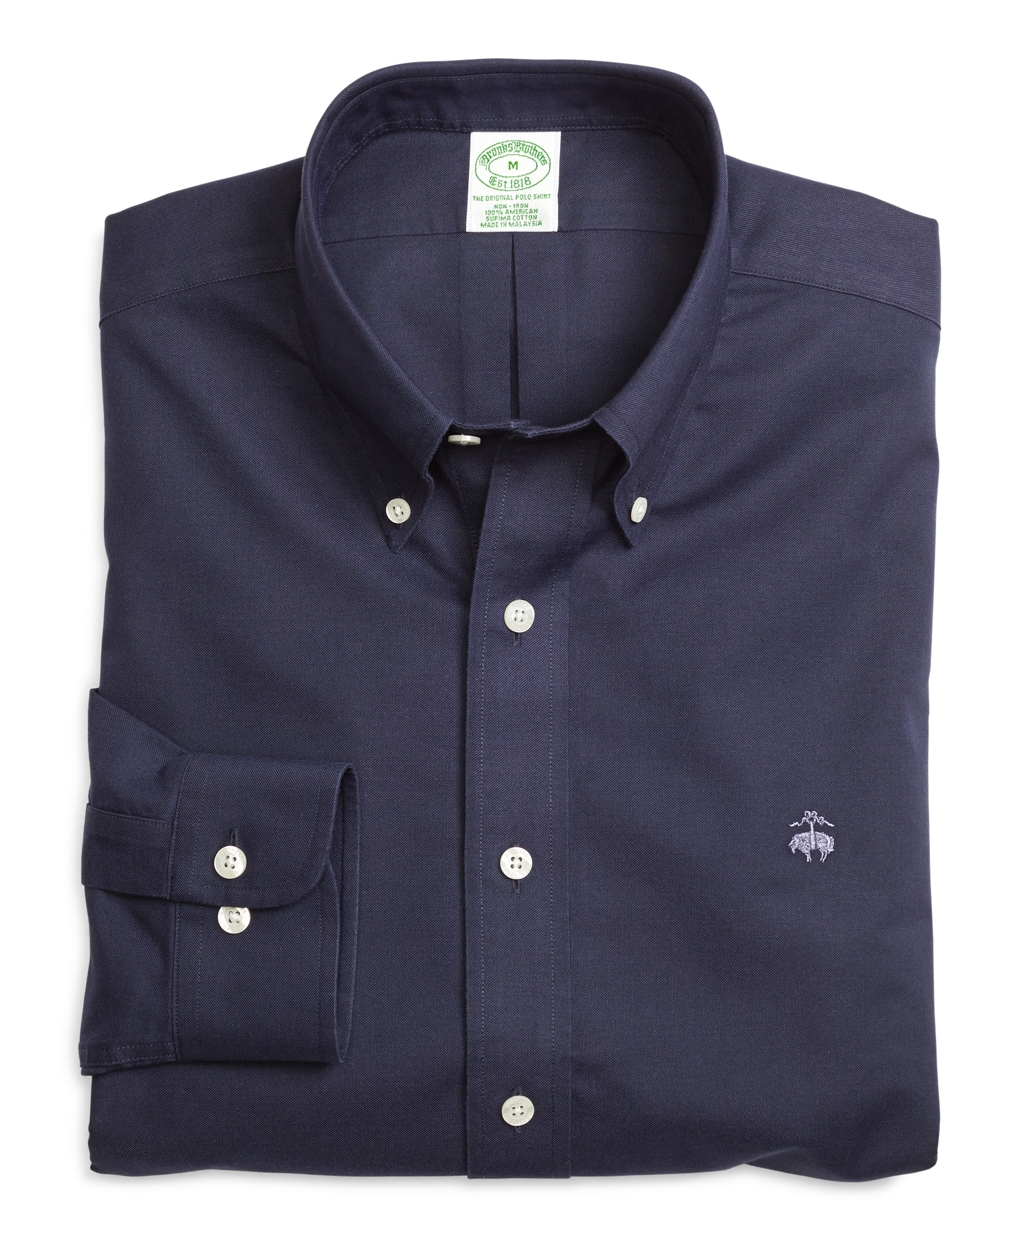 Brooks brothers non iron extra slim fit solid sport shirt for Brooks brothers non iron shirts review